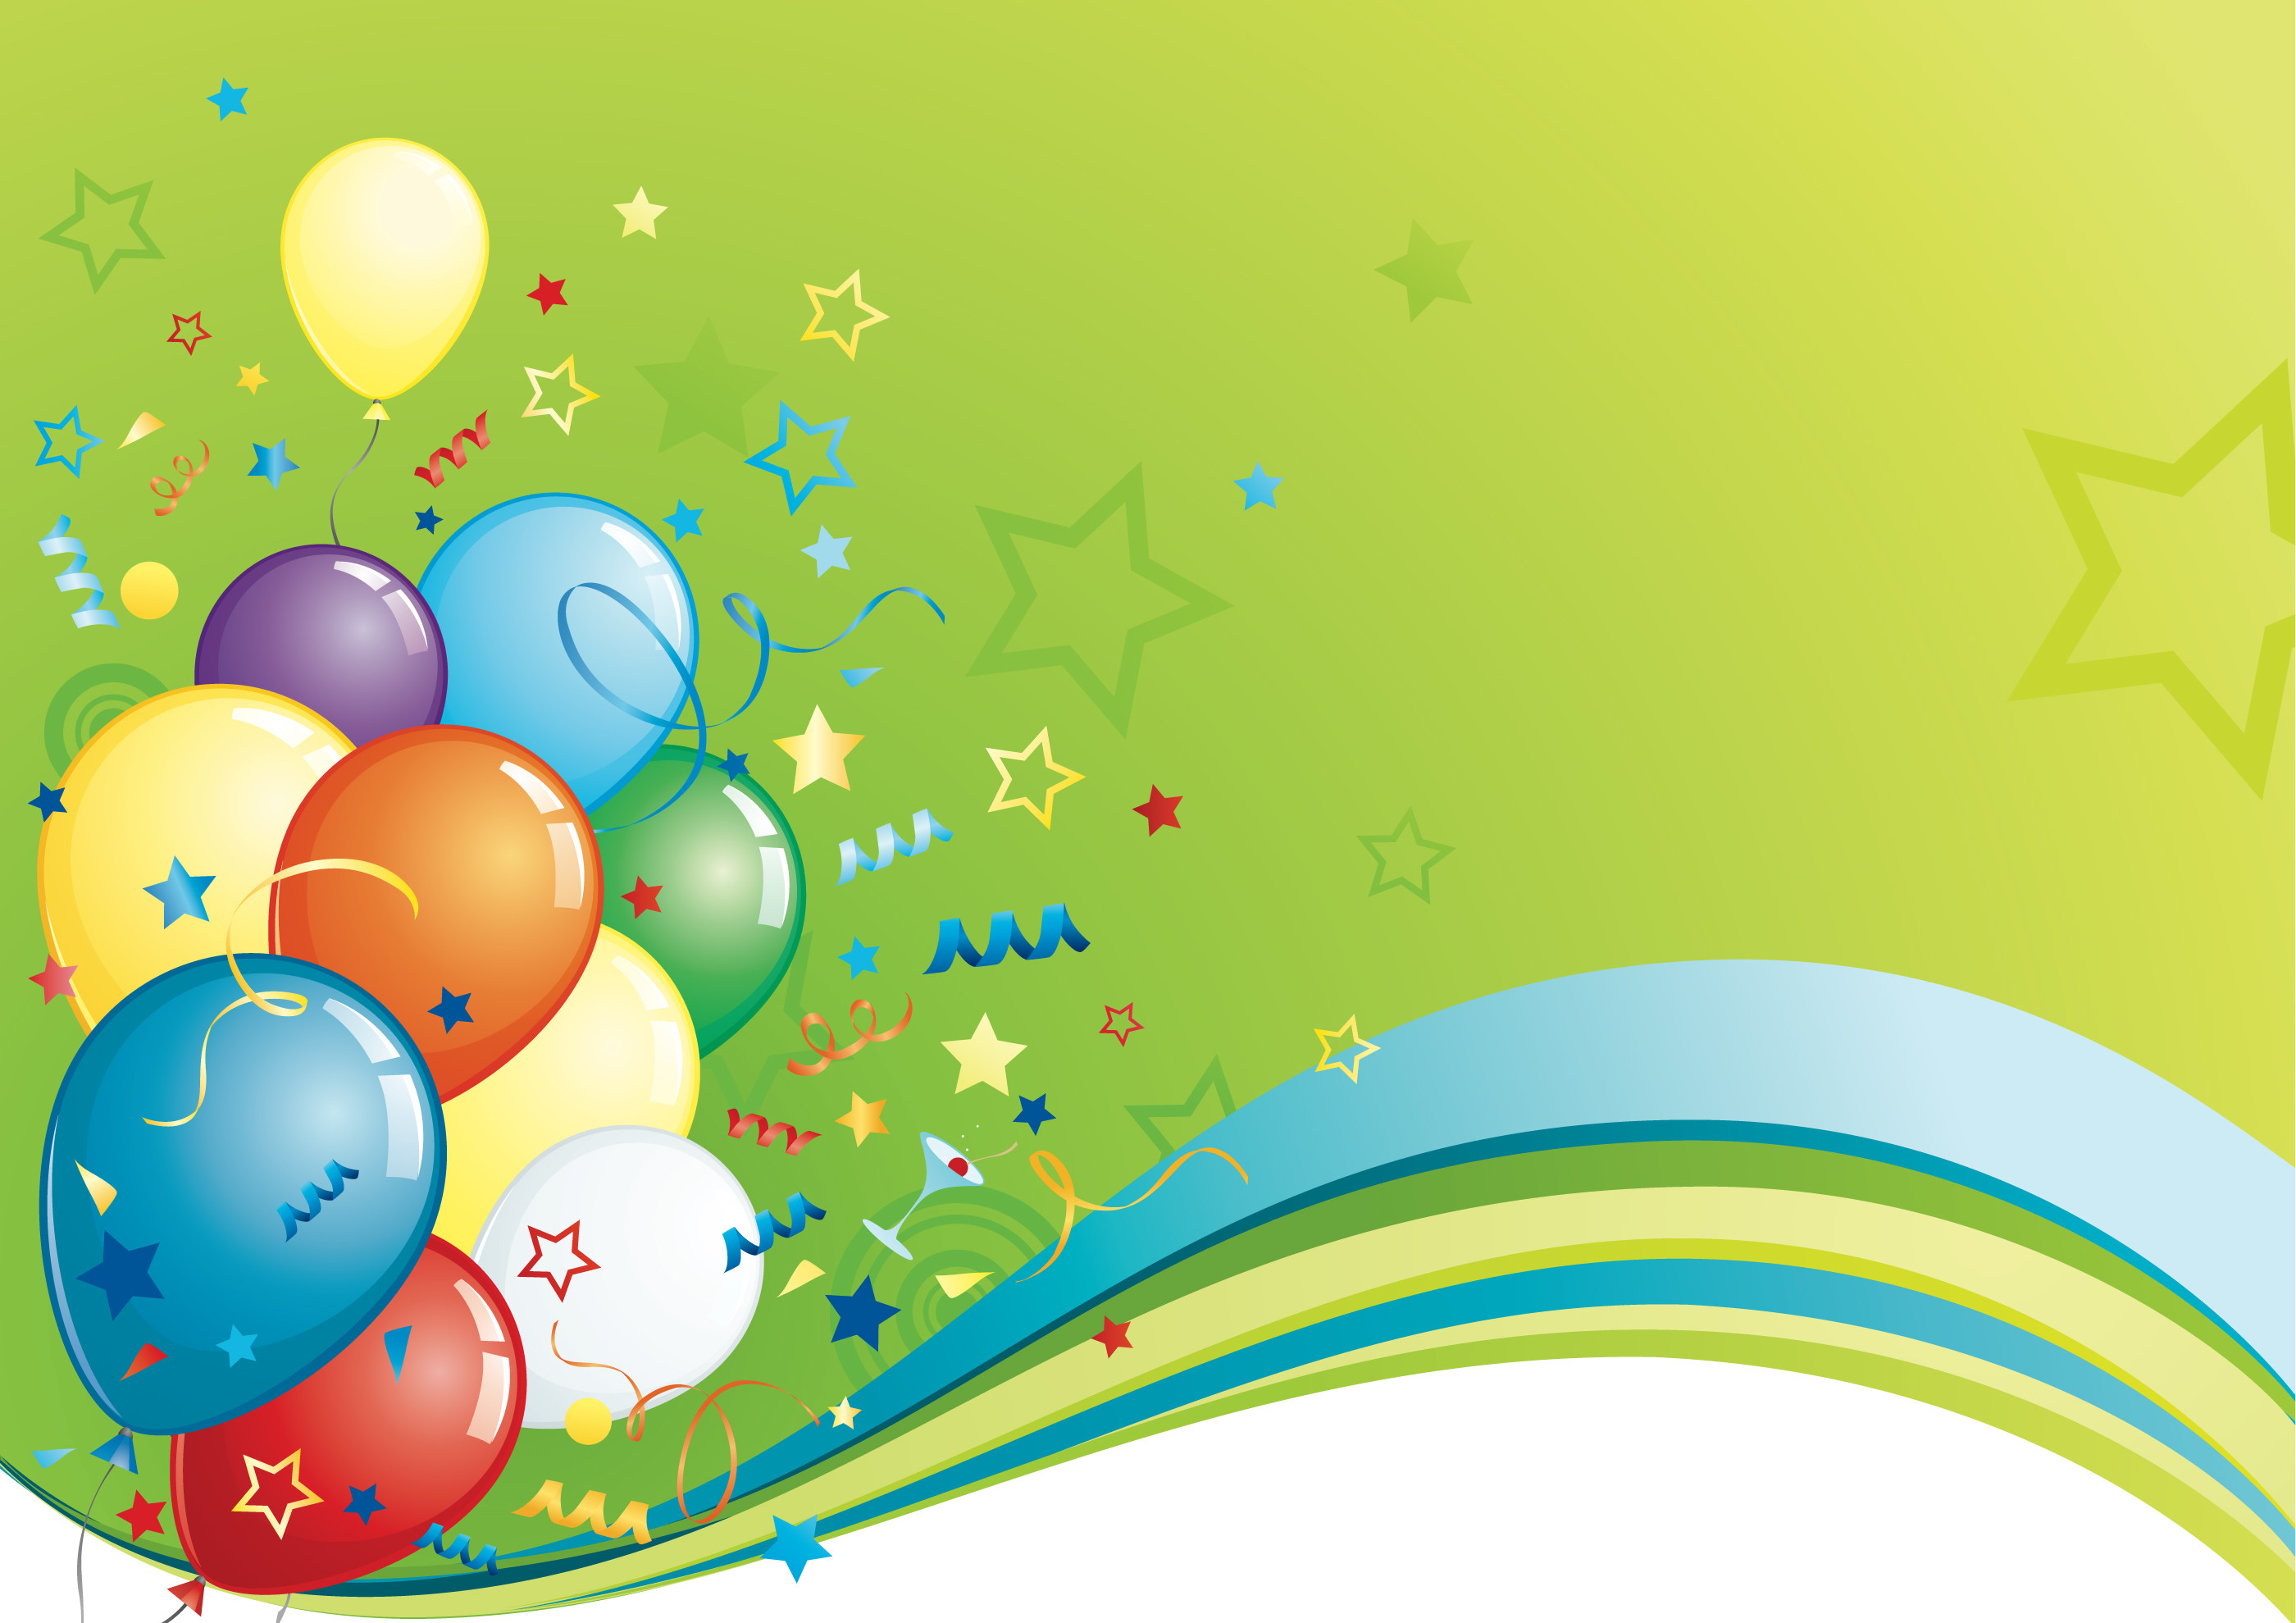 Happy birthday colorful balloon backgrounds free download